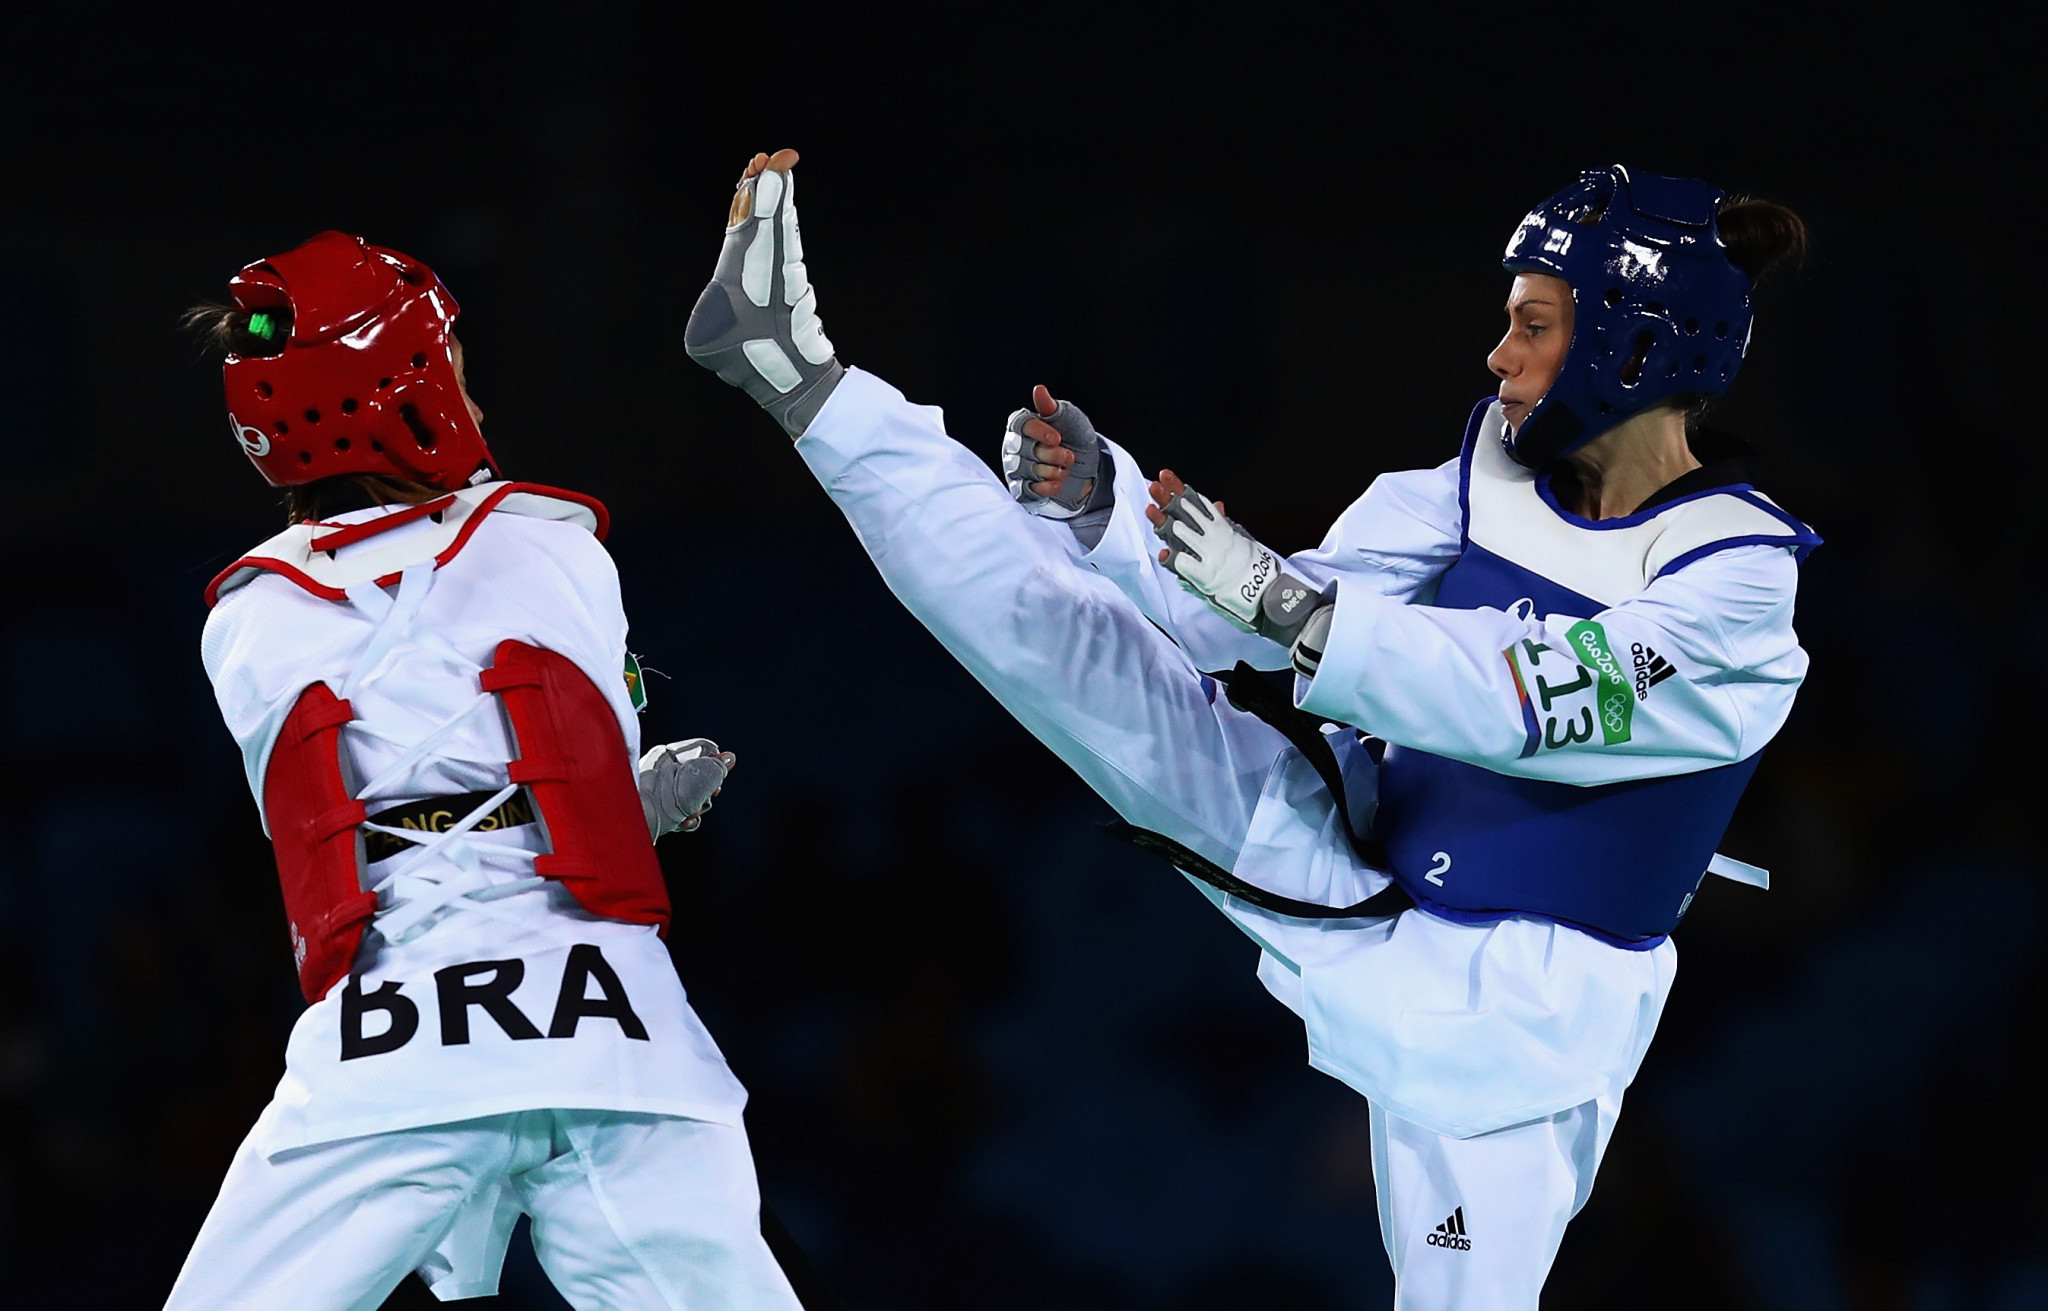 Andrea Kilday was New Zealand's sole taekwondo representative at the Rio 2016 Olympic Games ©Getty Images